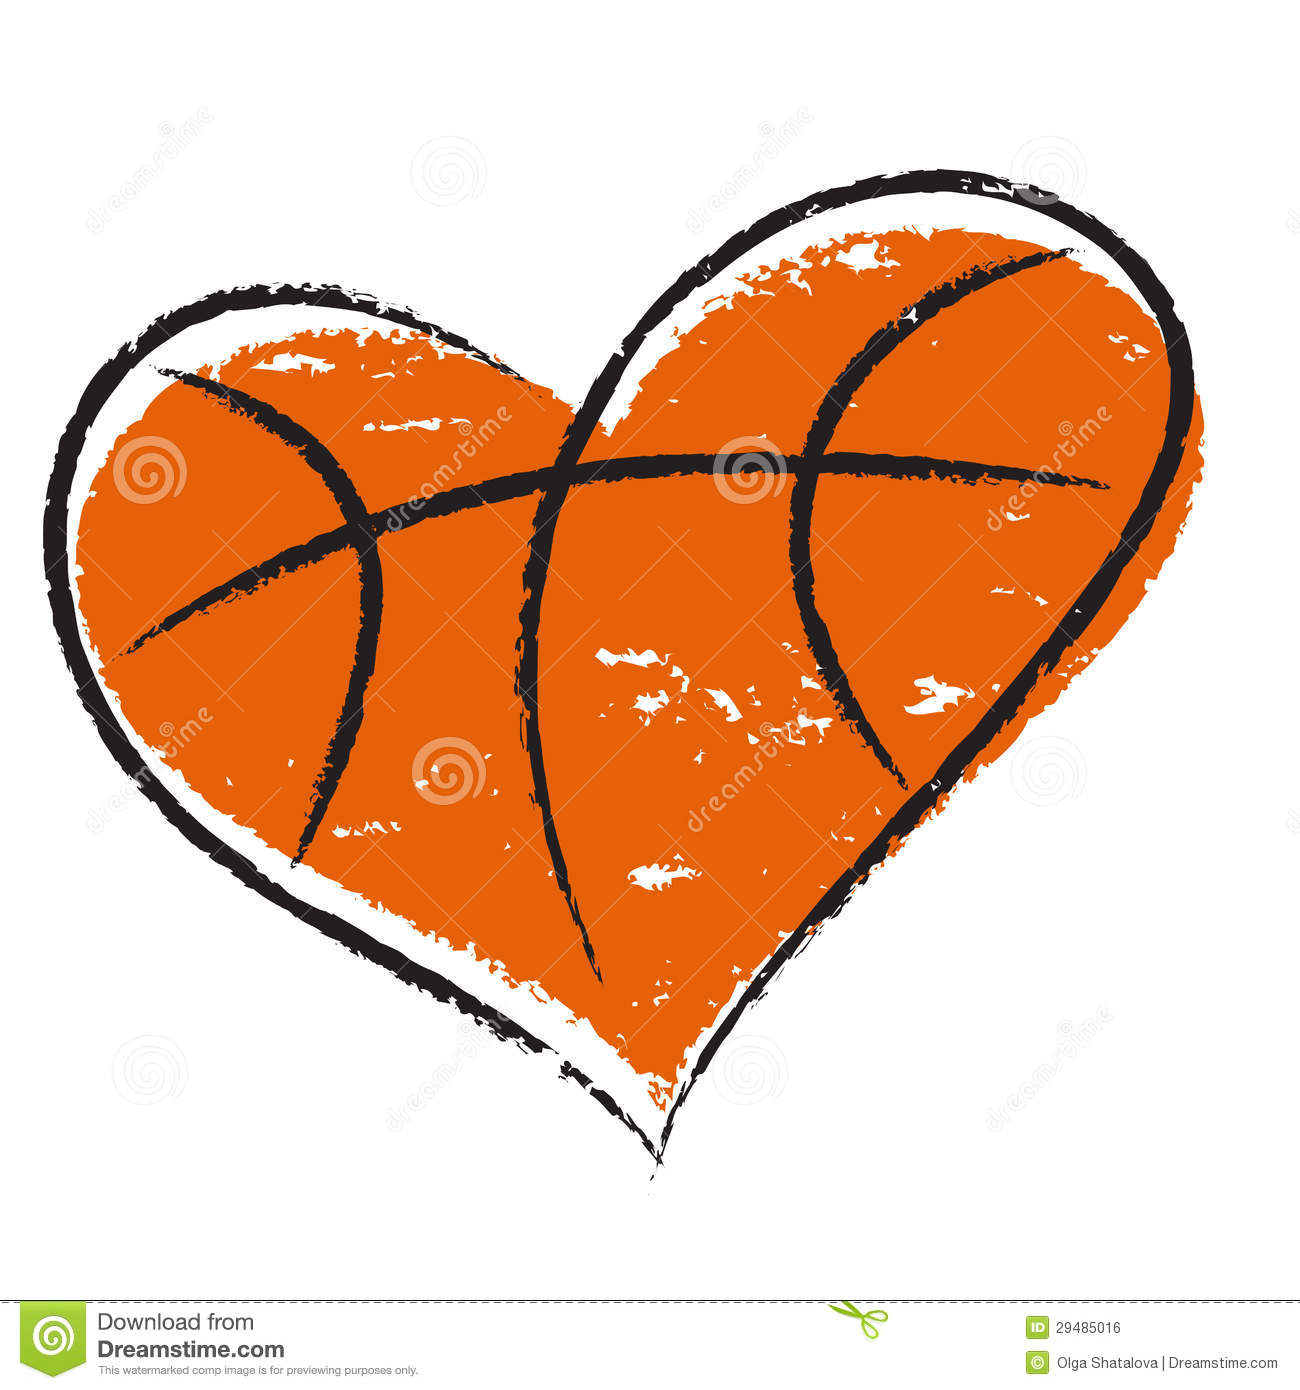 Basketball heart isolated on white background for sports design ...